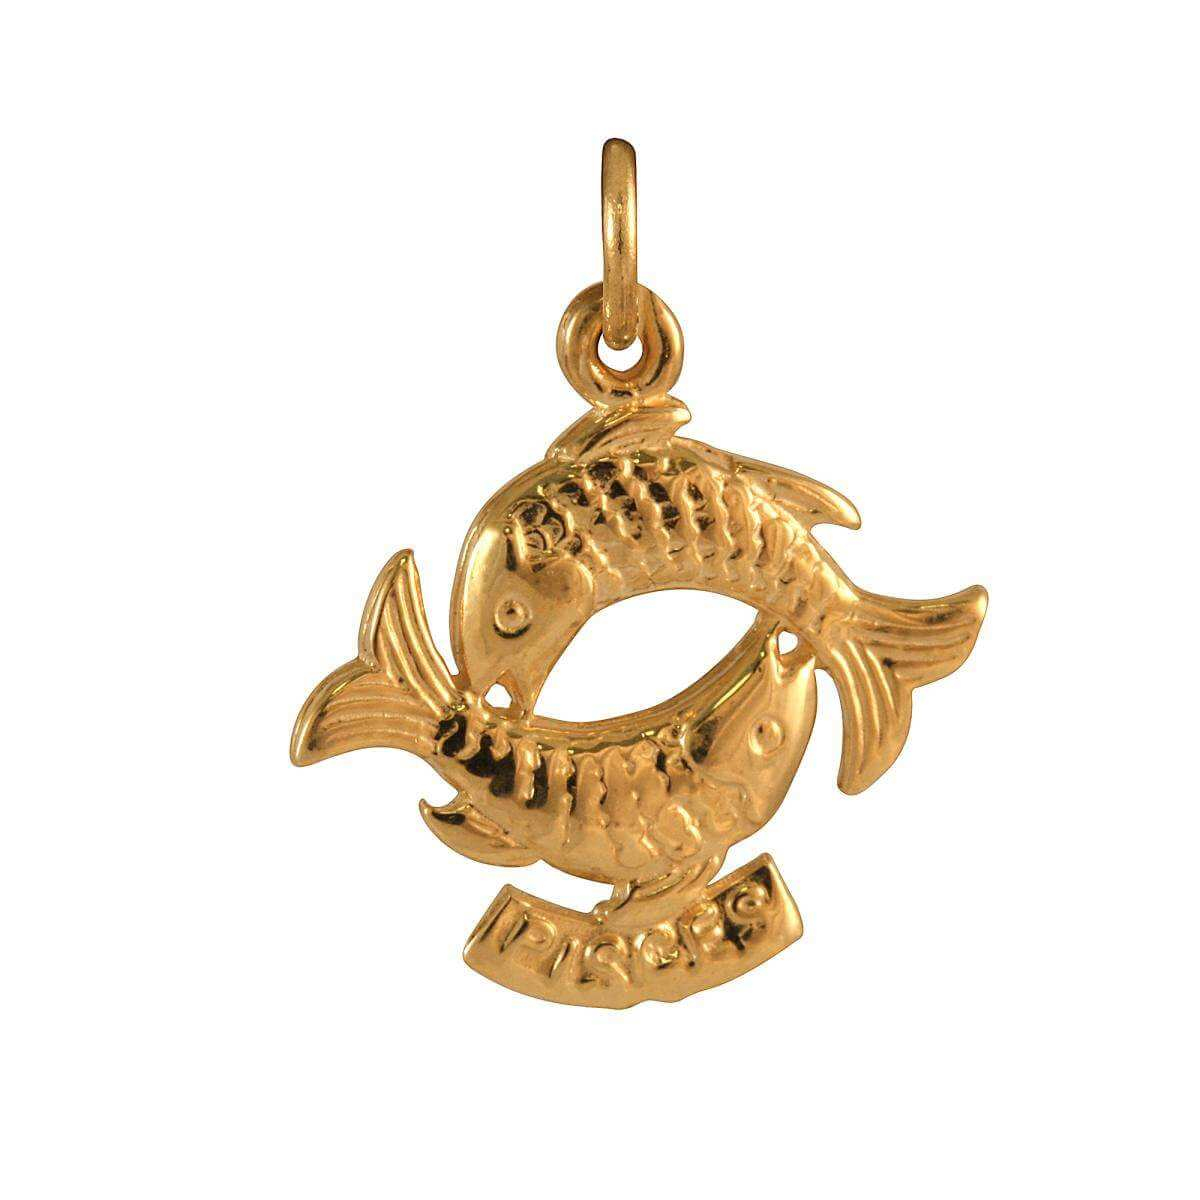 9ct Gold Pisces Fish Charm